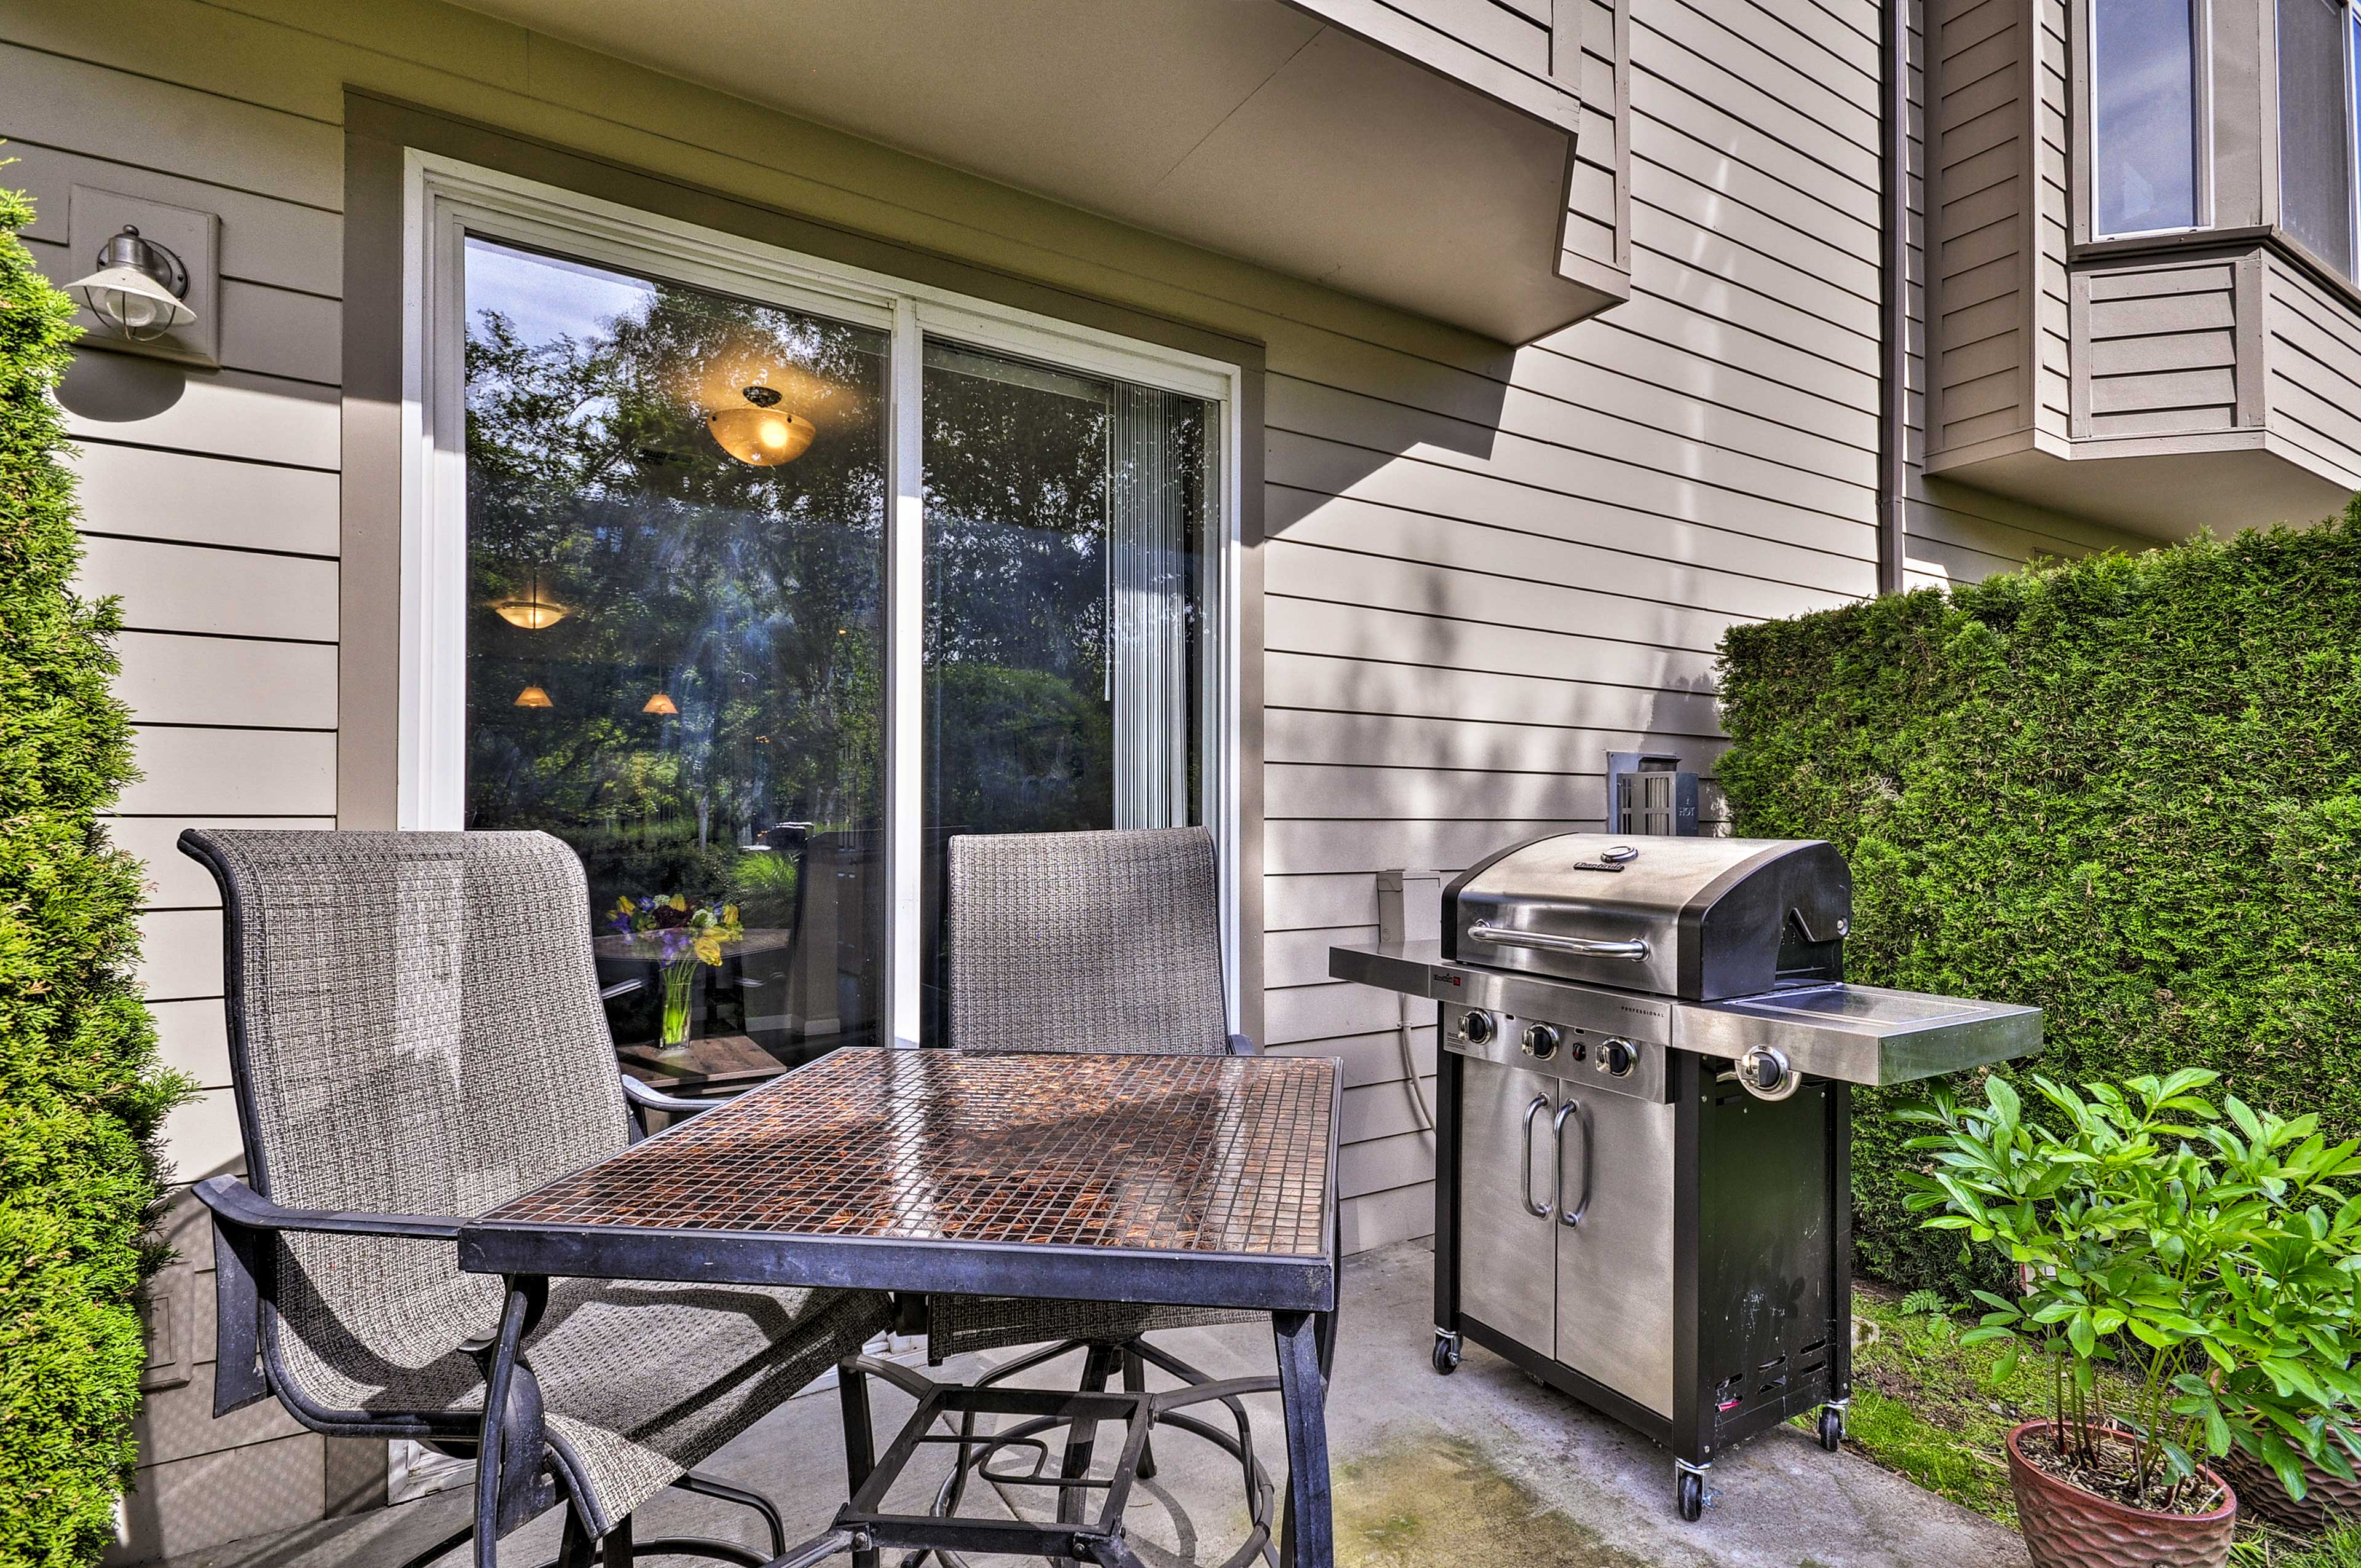 Pray for sun and enjoy an afternoon on the deck BBQ-ing lunch.